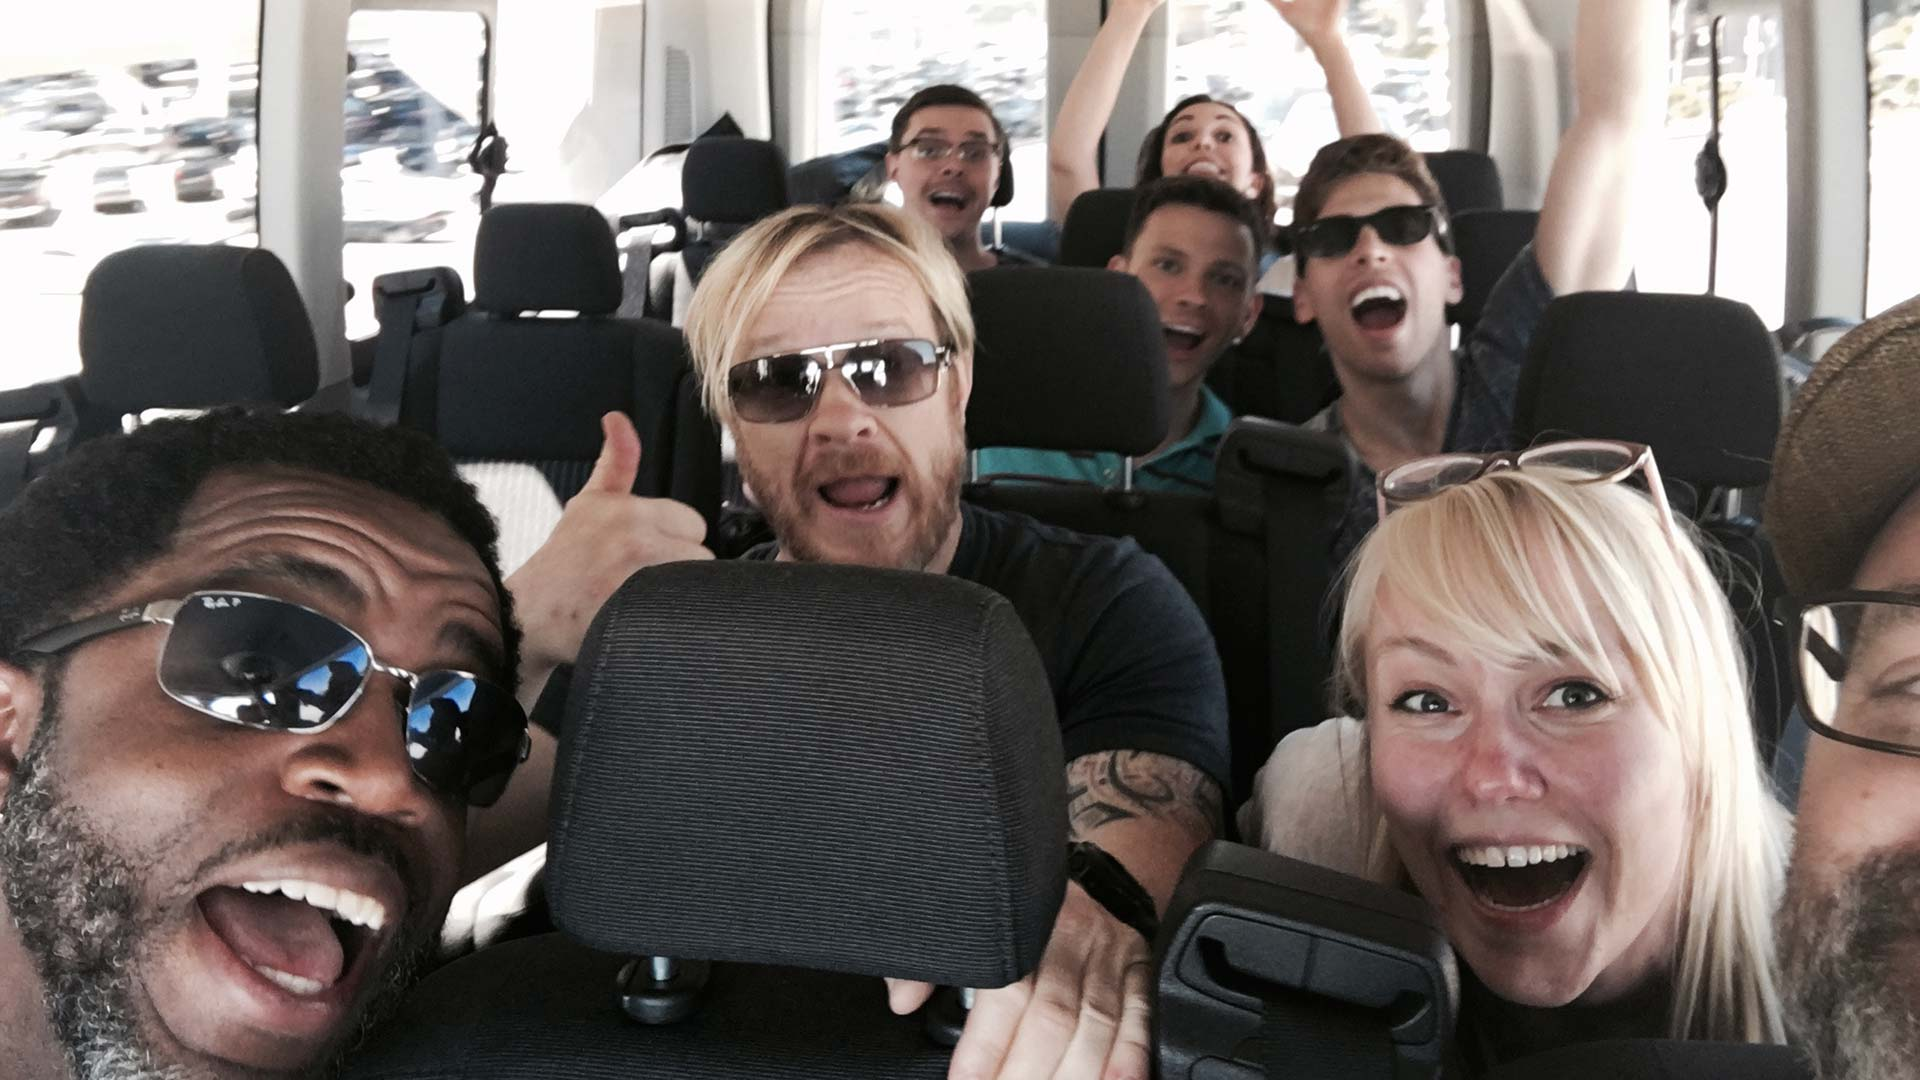 The gang is back in San Diego! (Heli Kennedy, OB comic writer, is the stoked blond woman in both photos.)